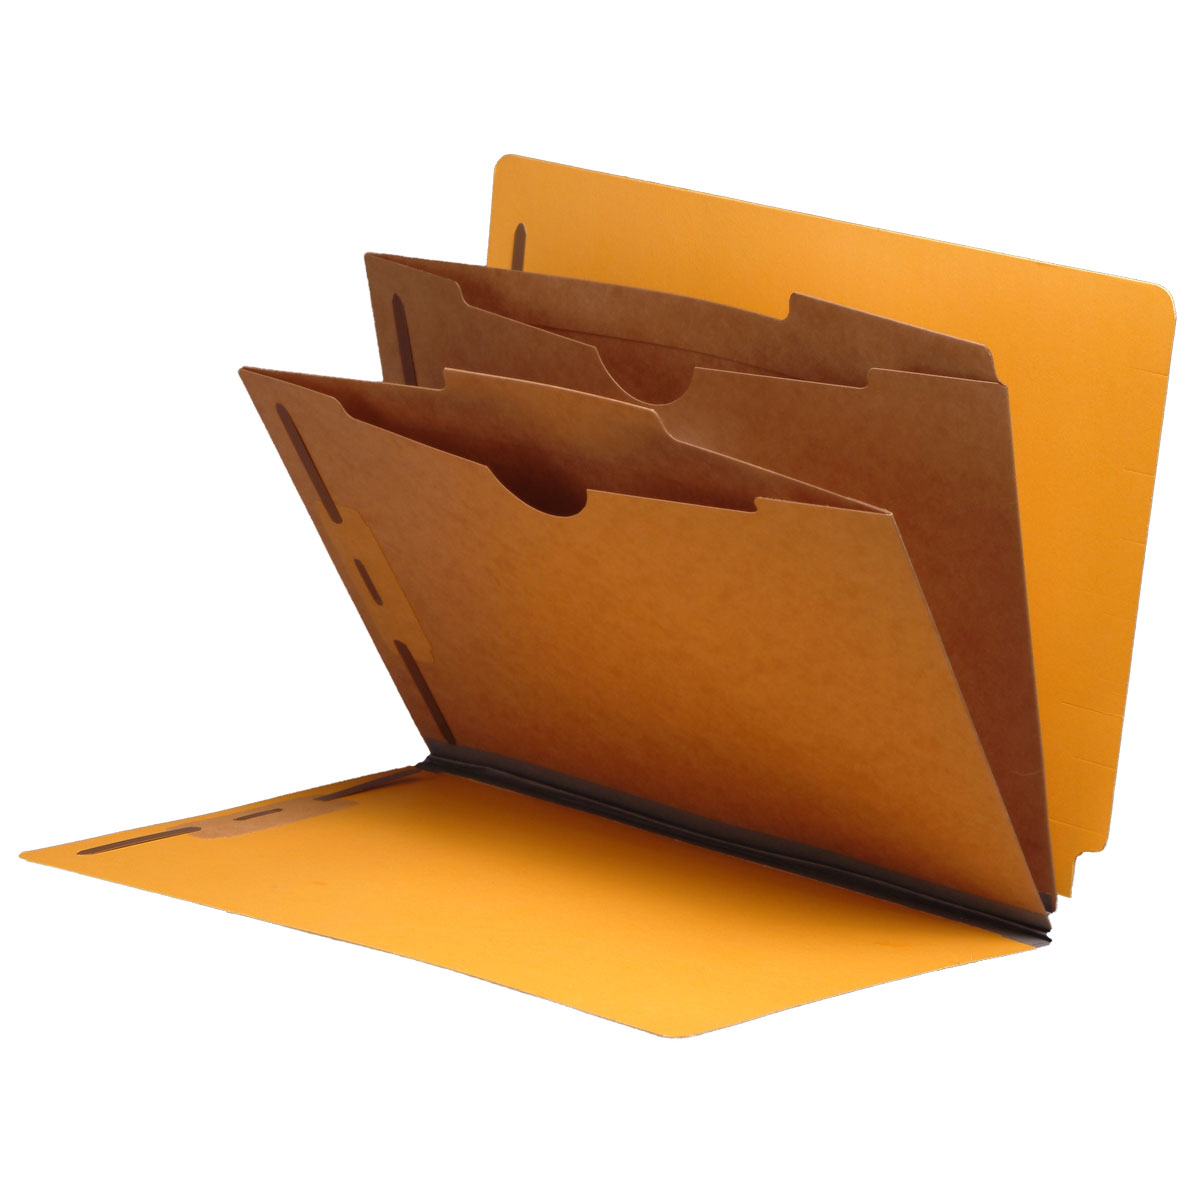 S-9041-YLW - Type I Pressboard Classification Folders, Full Cut End Tab, Letter Size, 2 Pocket Dividers, Yellow (Box of 10)